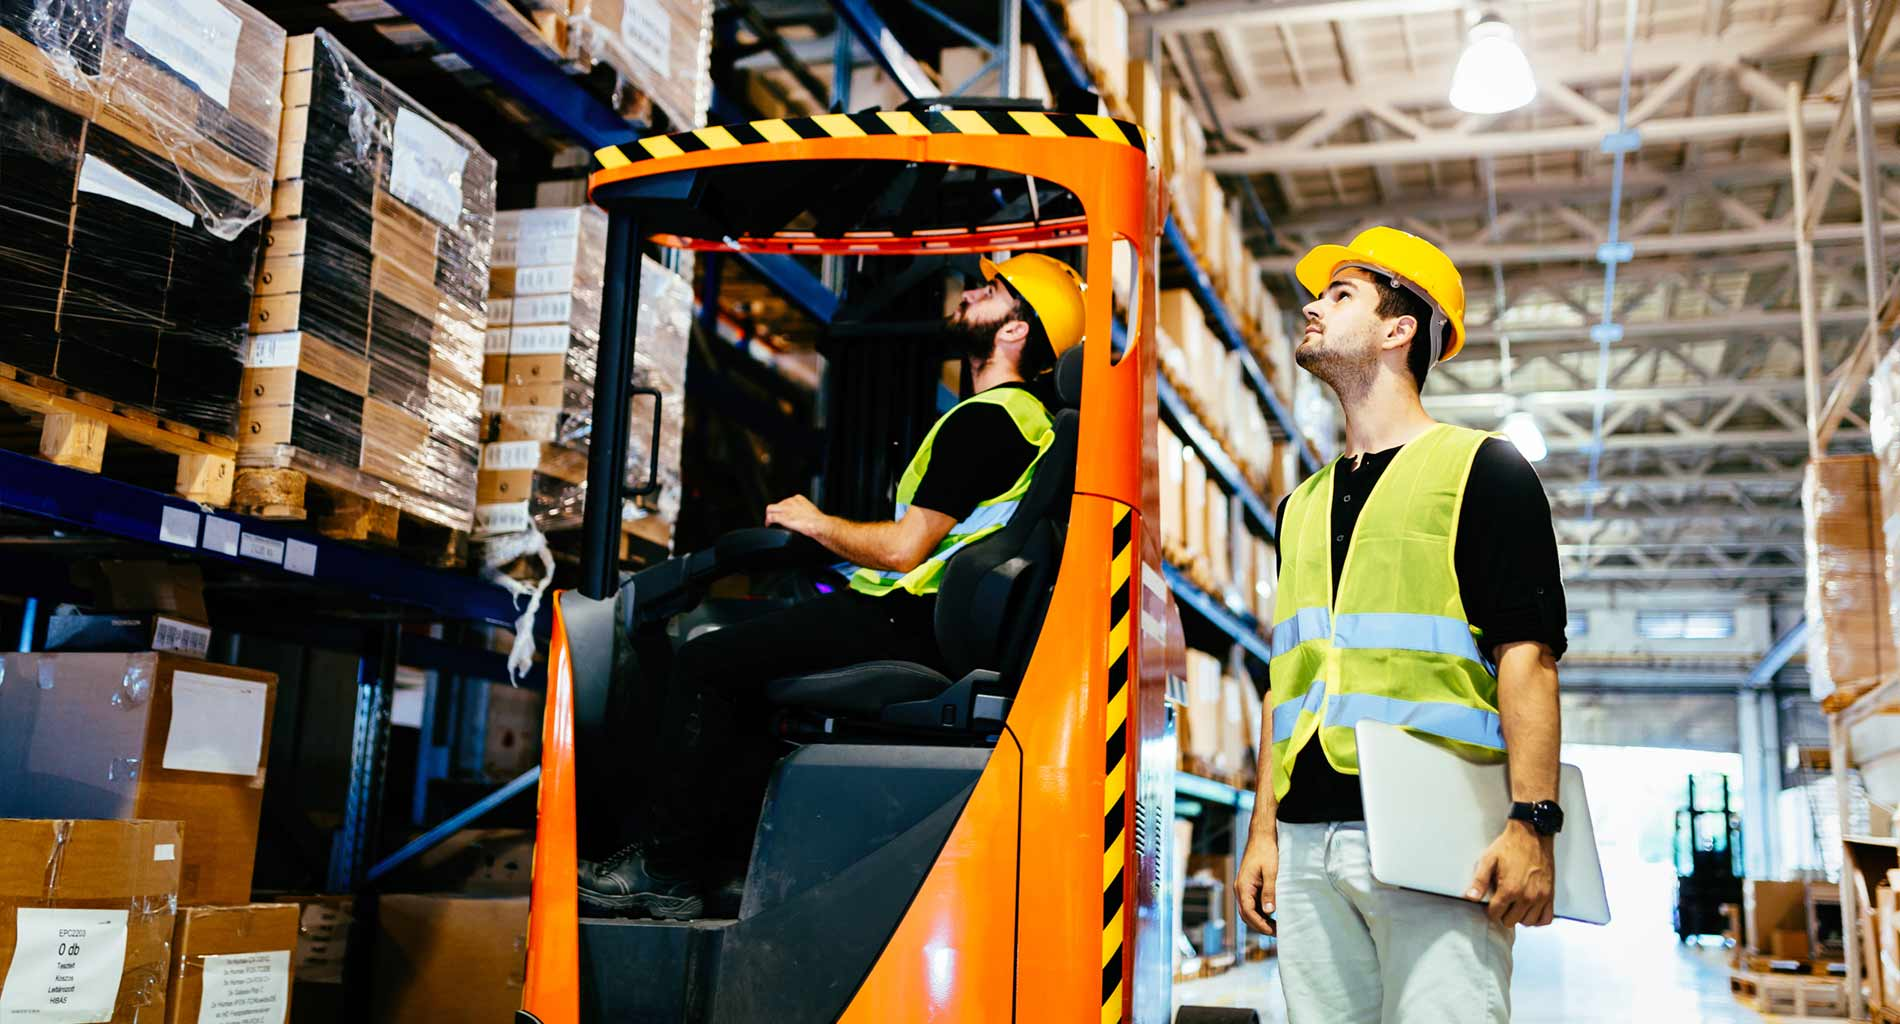 Forklift truck and driver in warehouse.